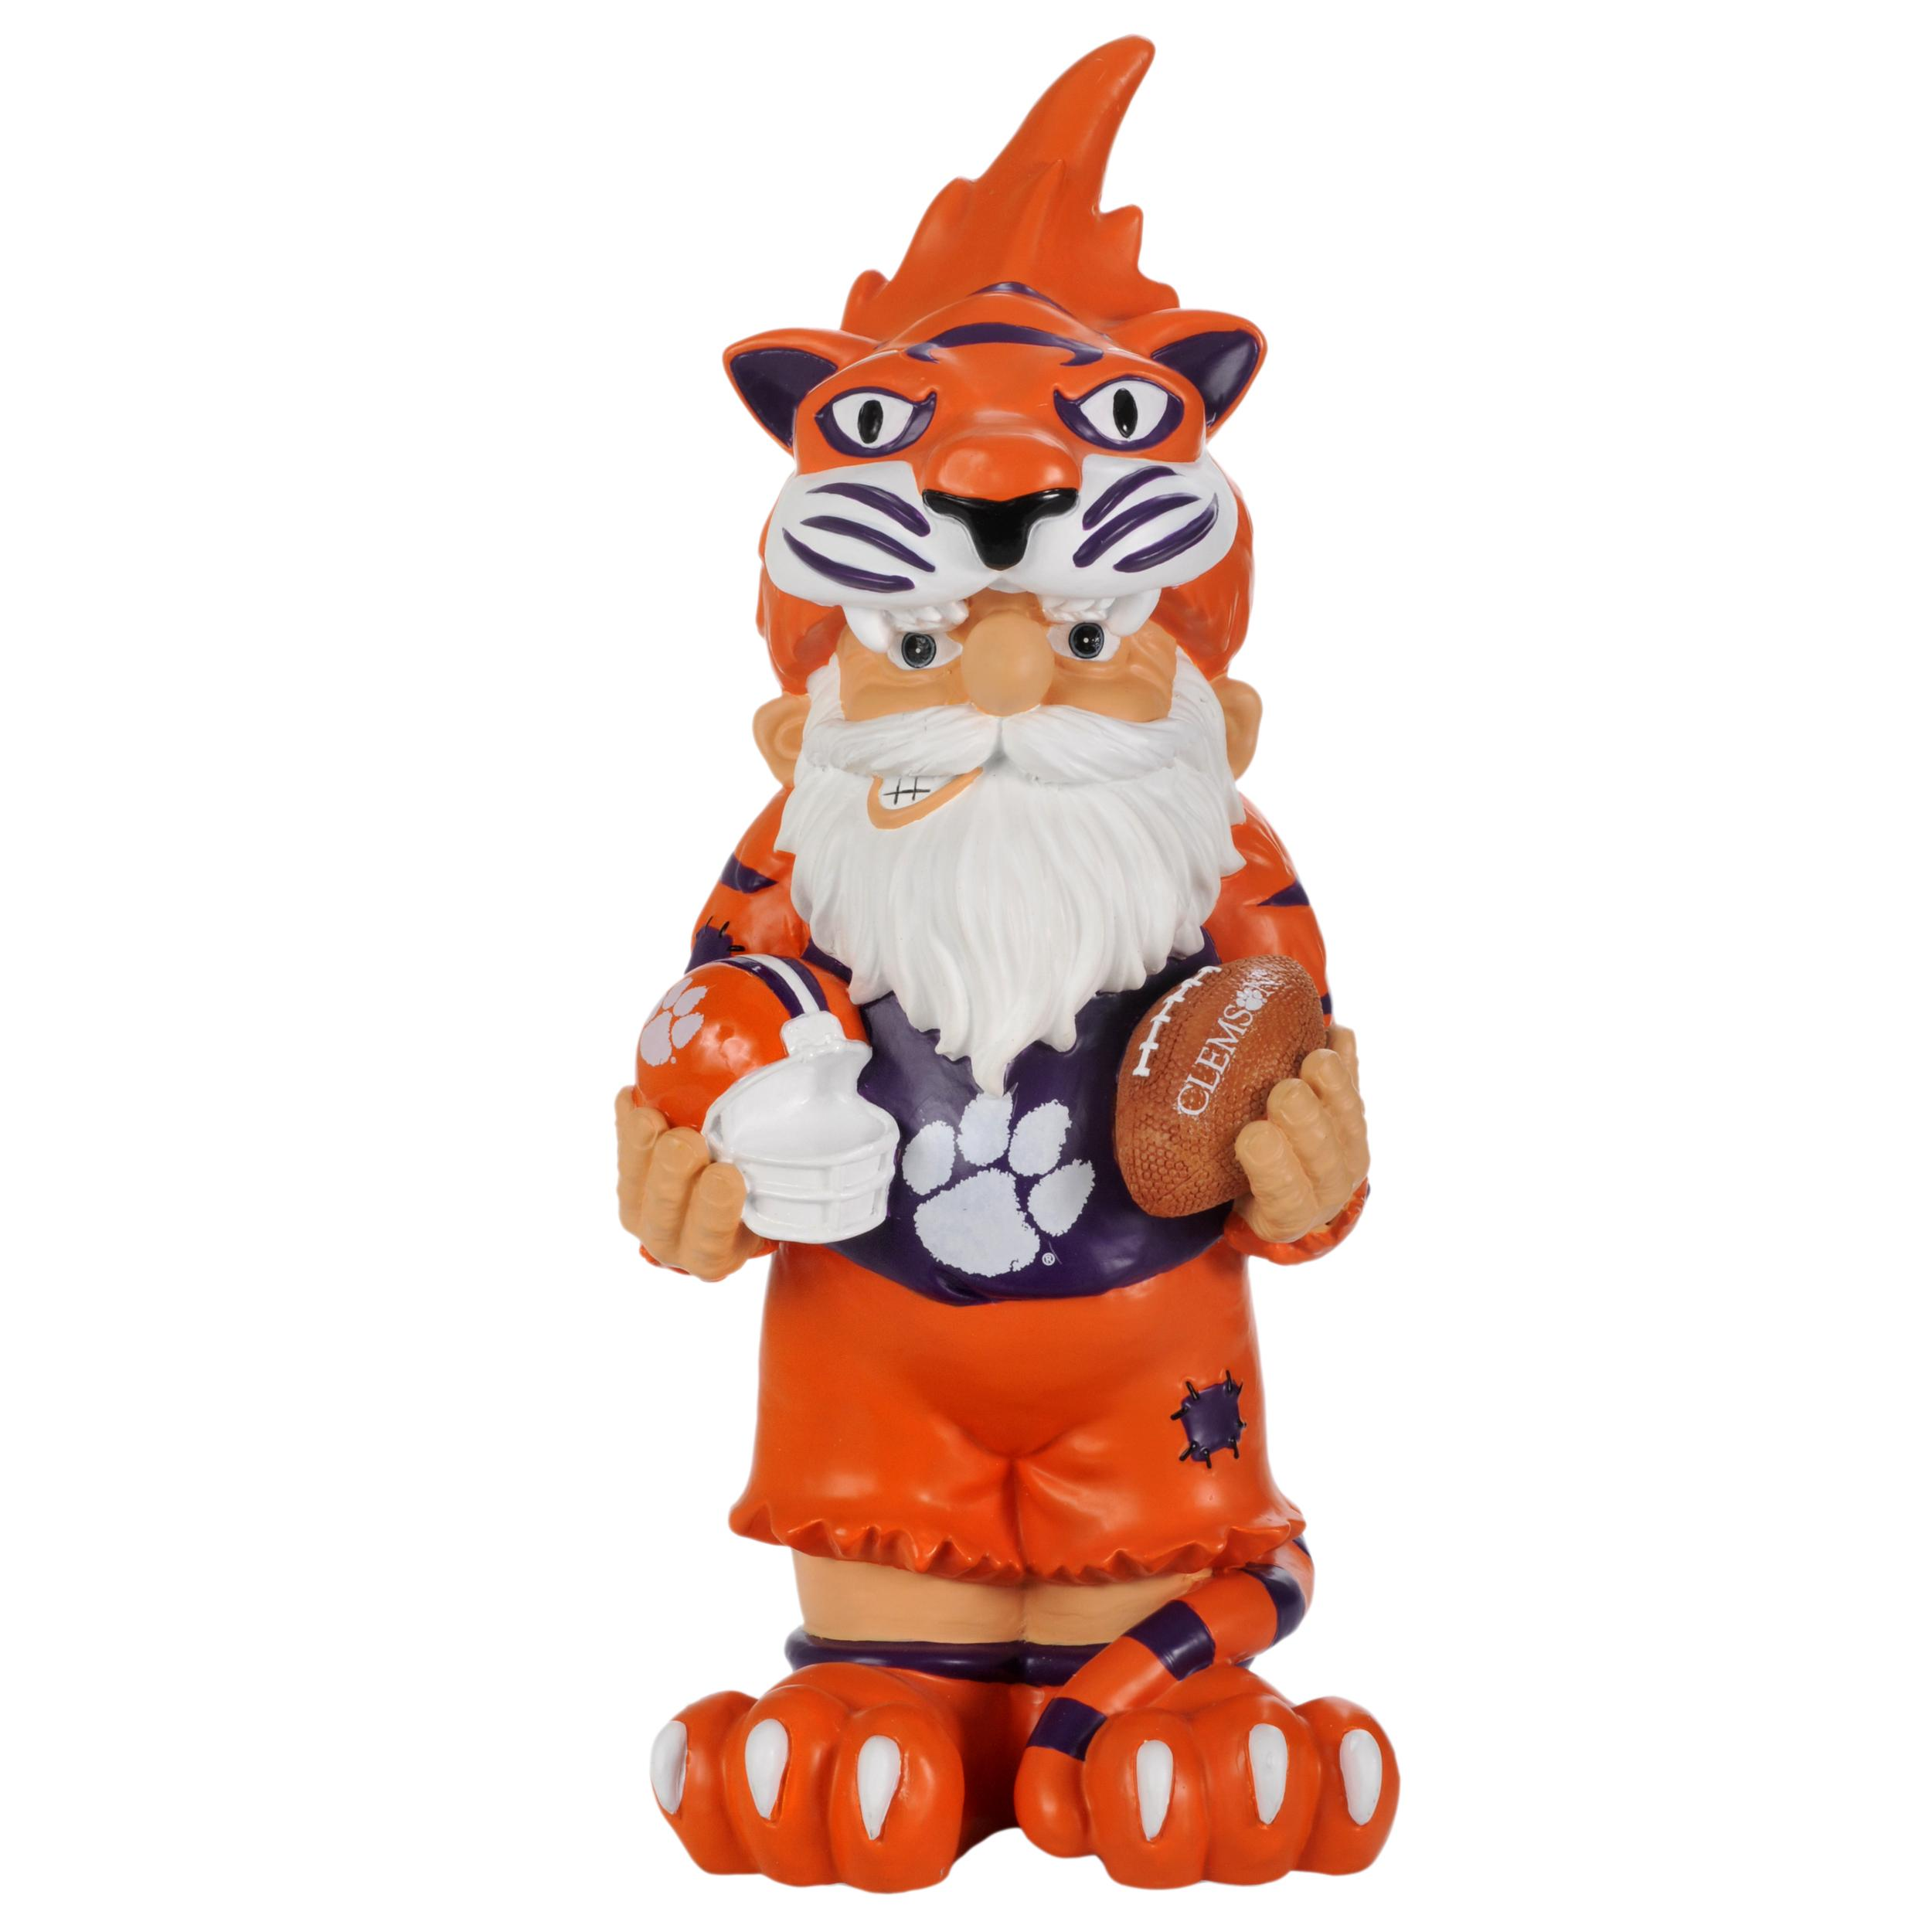 Clemson Tigers 11-inch Thematic Garden Gnome - Thumbnail 1